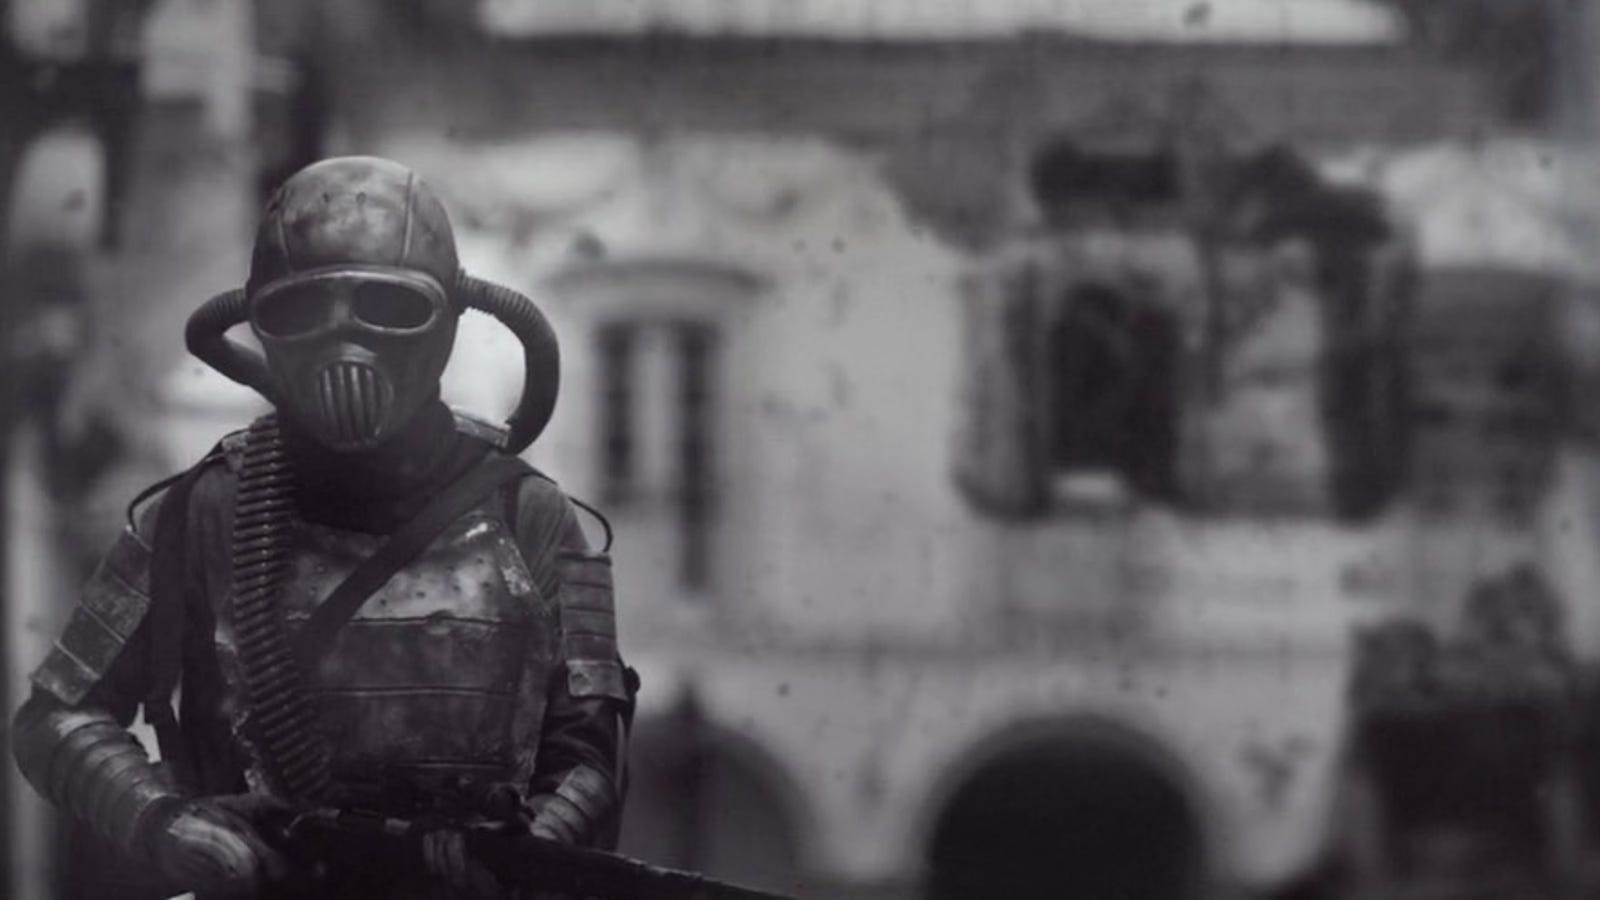 In This Stunningly Bleak Scifi Short, a Survivor Struggles in a Post-Apocalyptic Cityscape